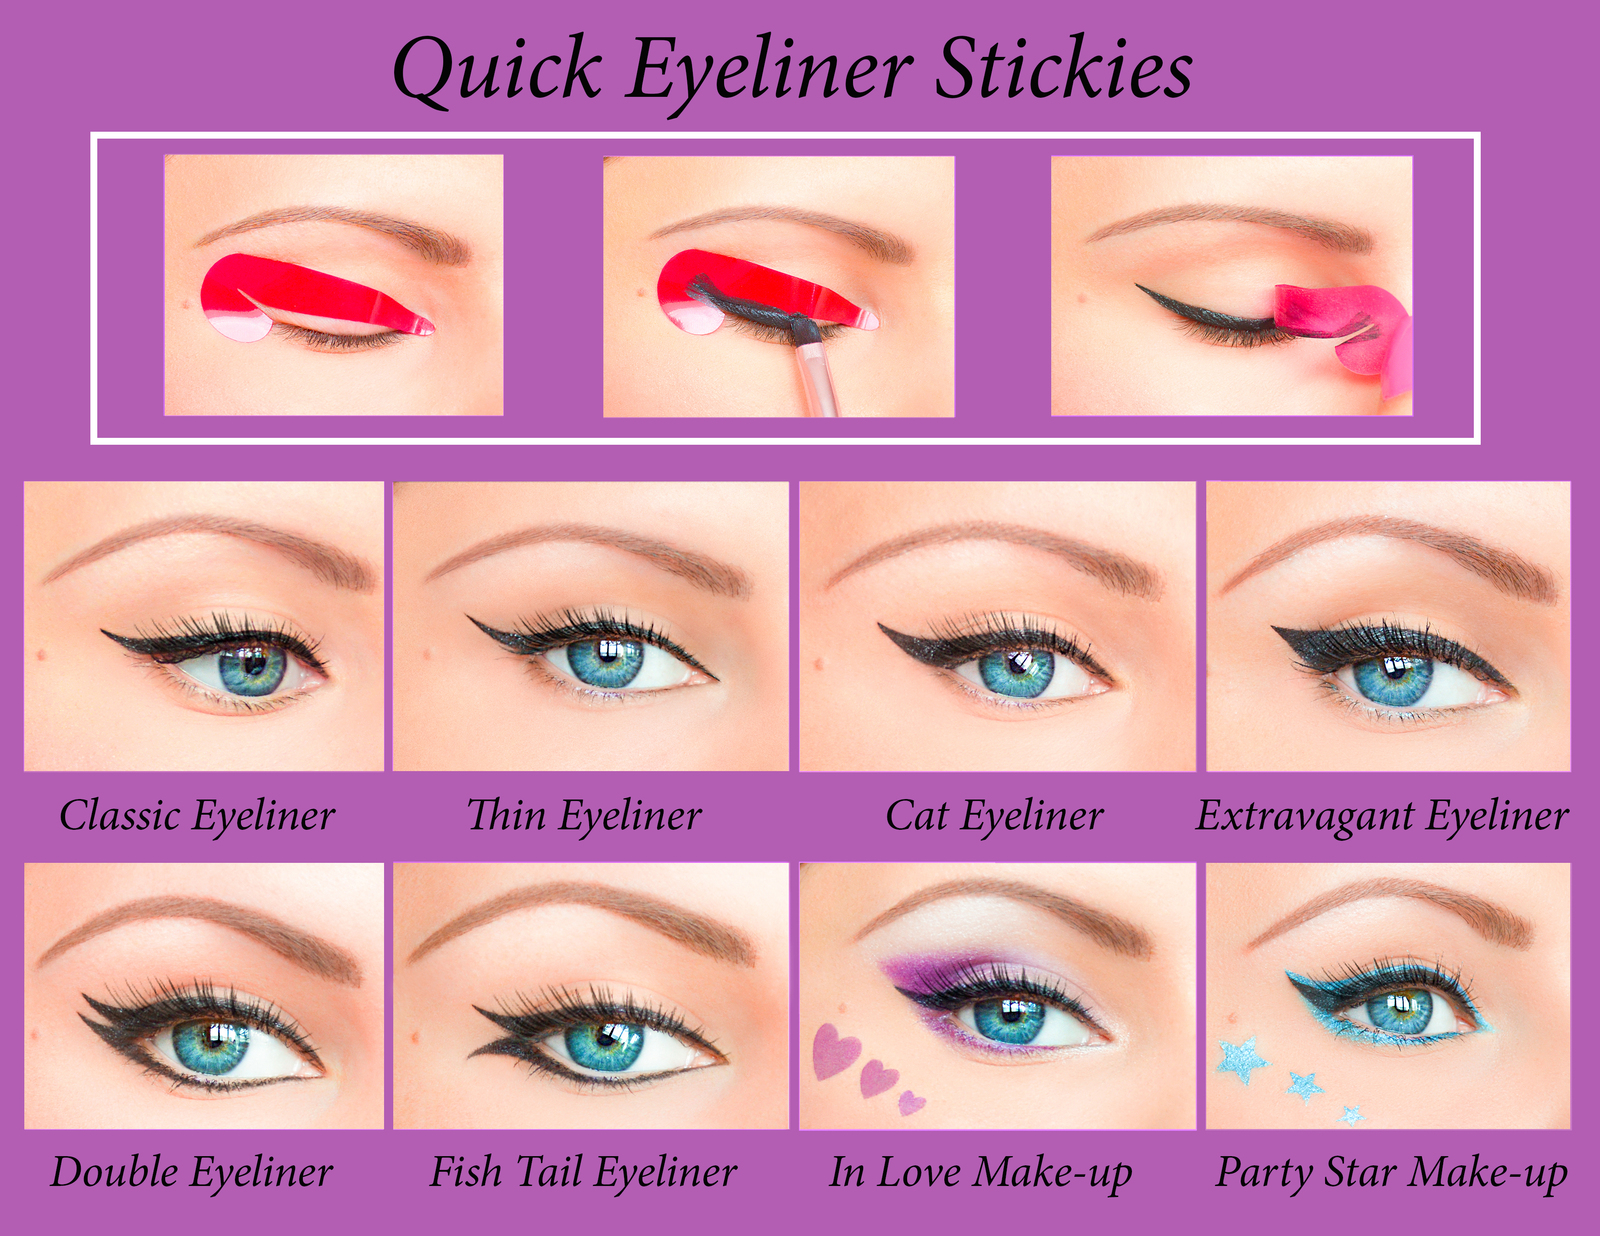 Quick Eyeliner Stickies Stencils Cosmetic Eye Makeup Tool NEW Free Shipping